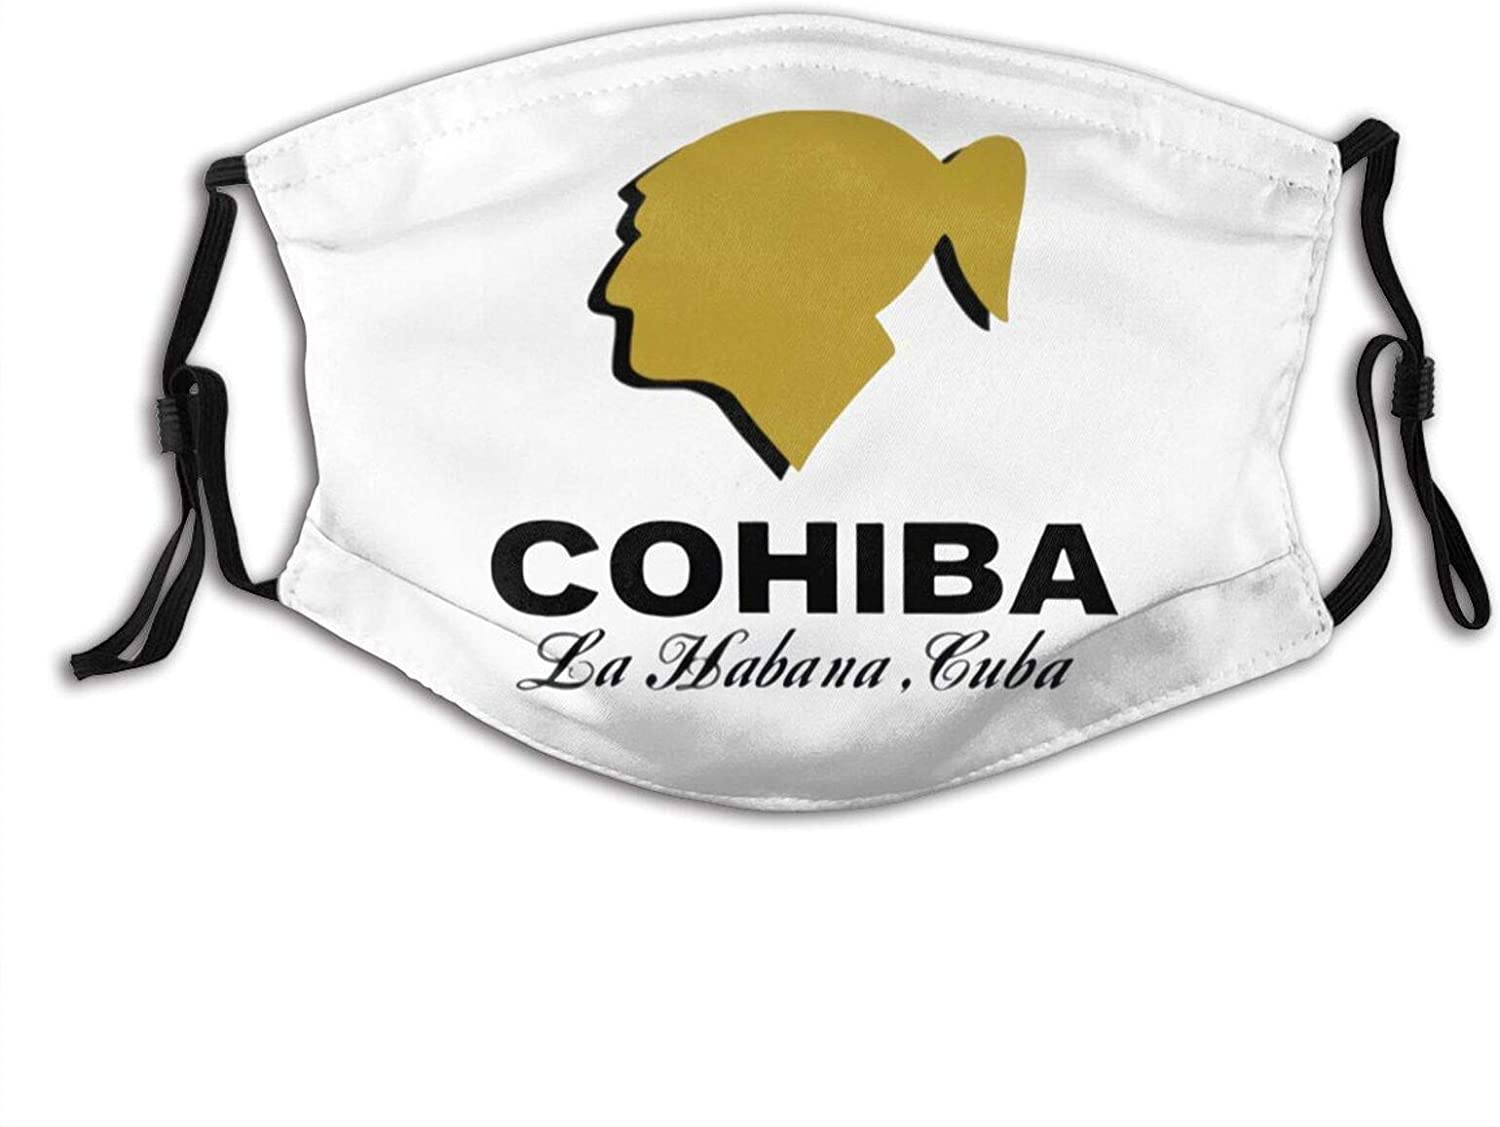 Cohiba Cigar Adjustable Unisex Reusable Face Mask Anti-Dust Masks Mouth Scarf Balaclava Face Protection For Outdoor With 2 Filters